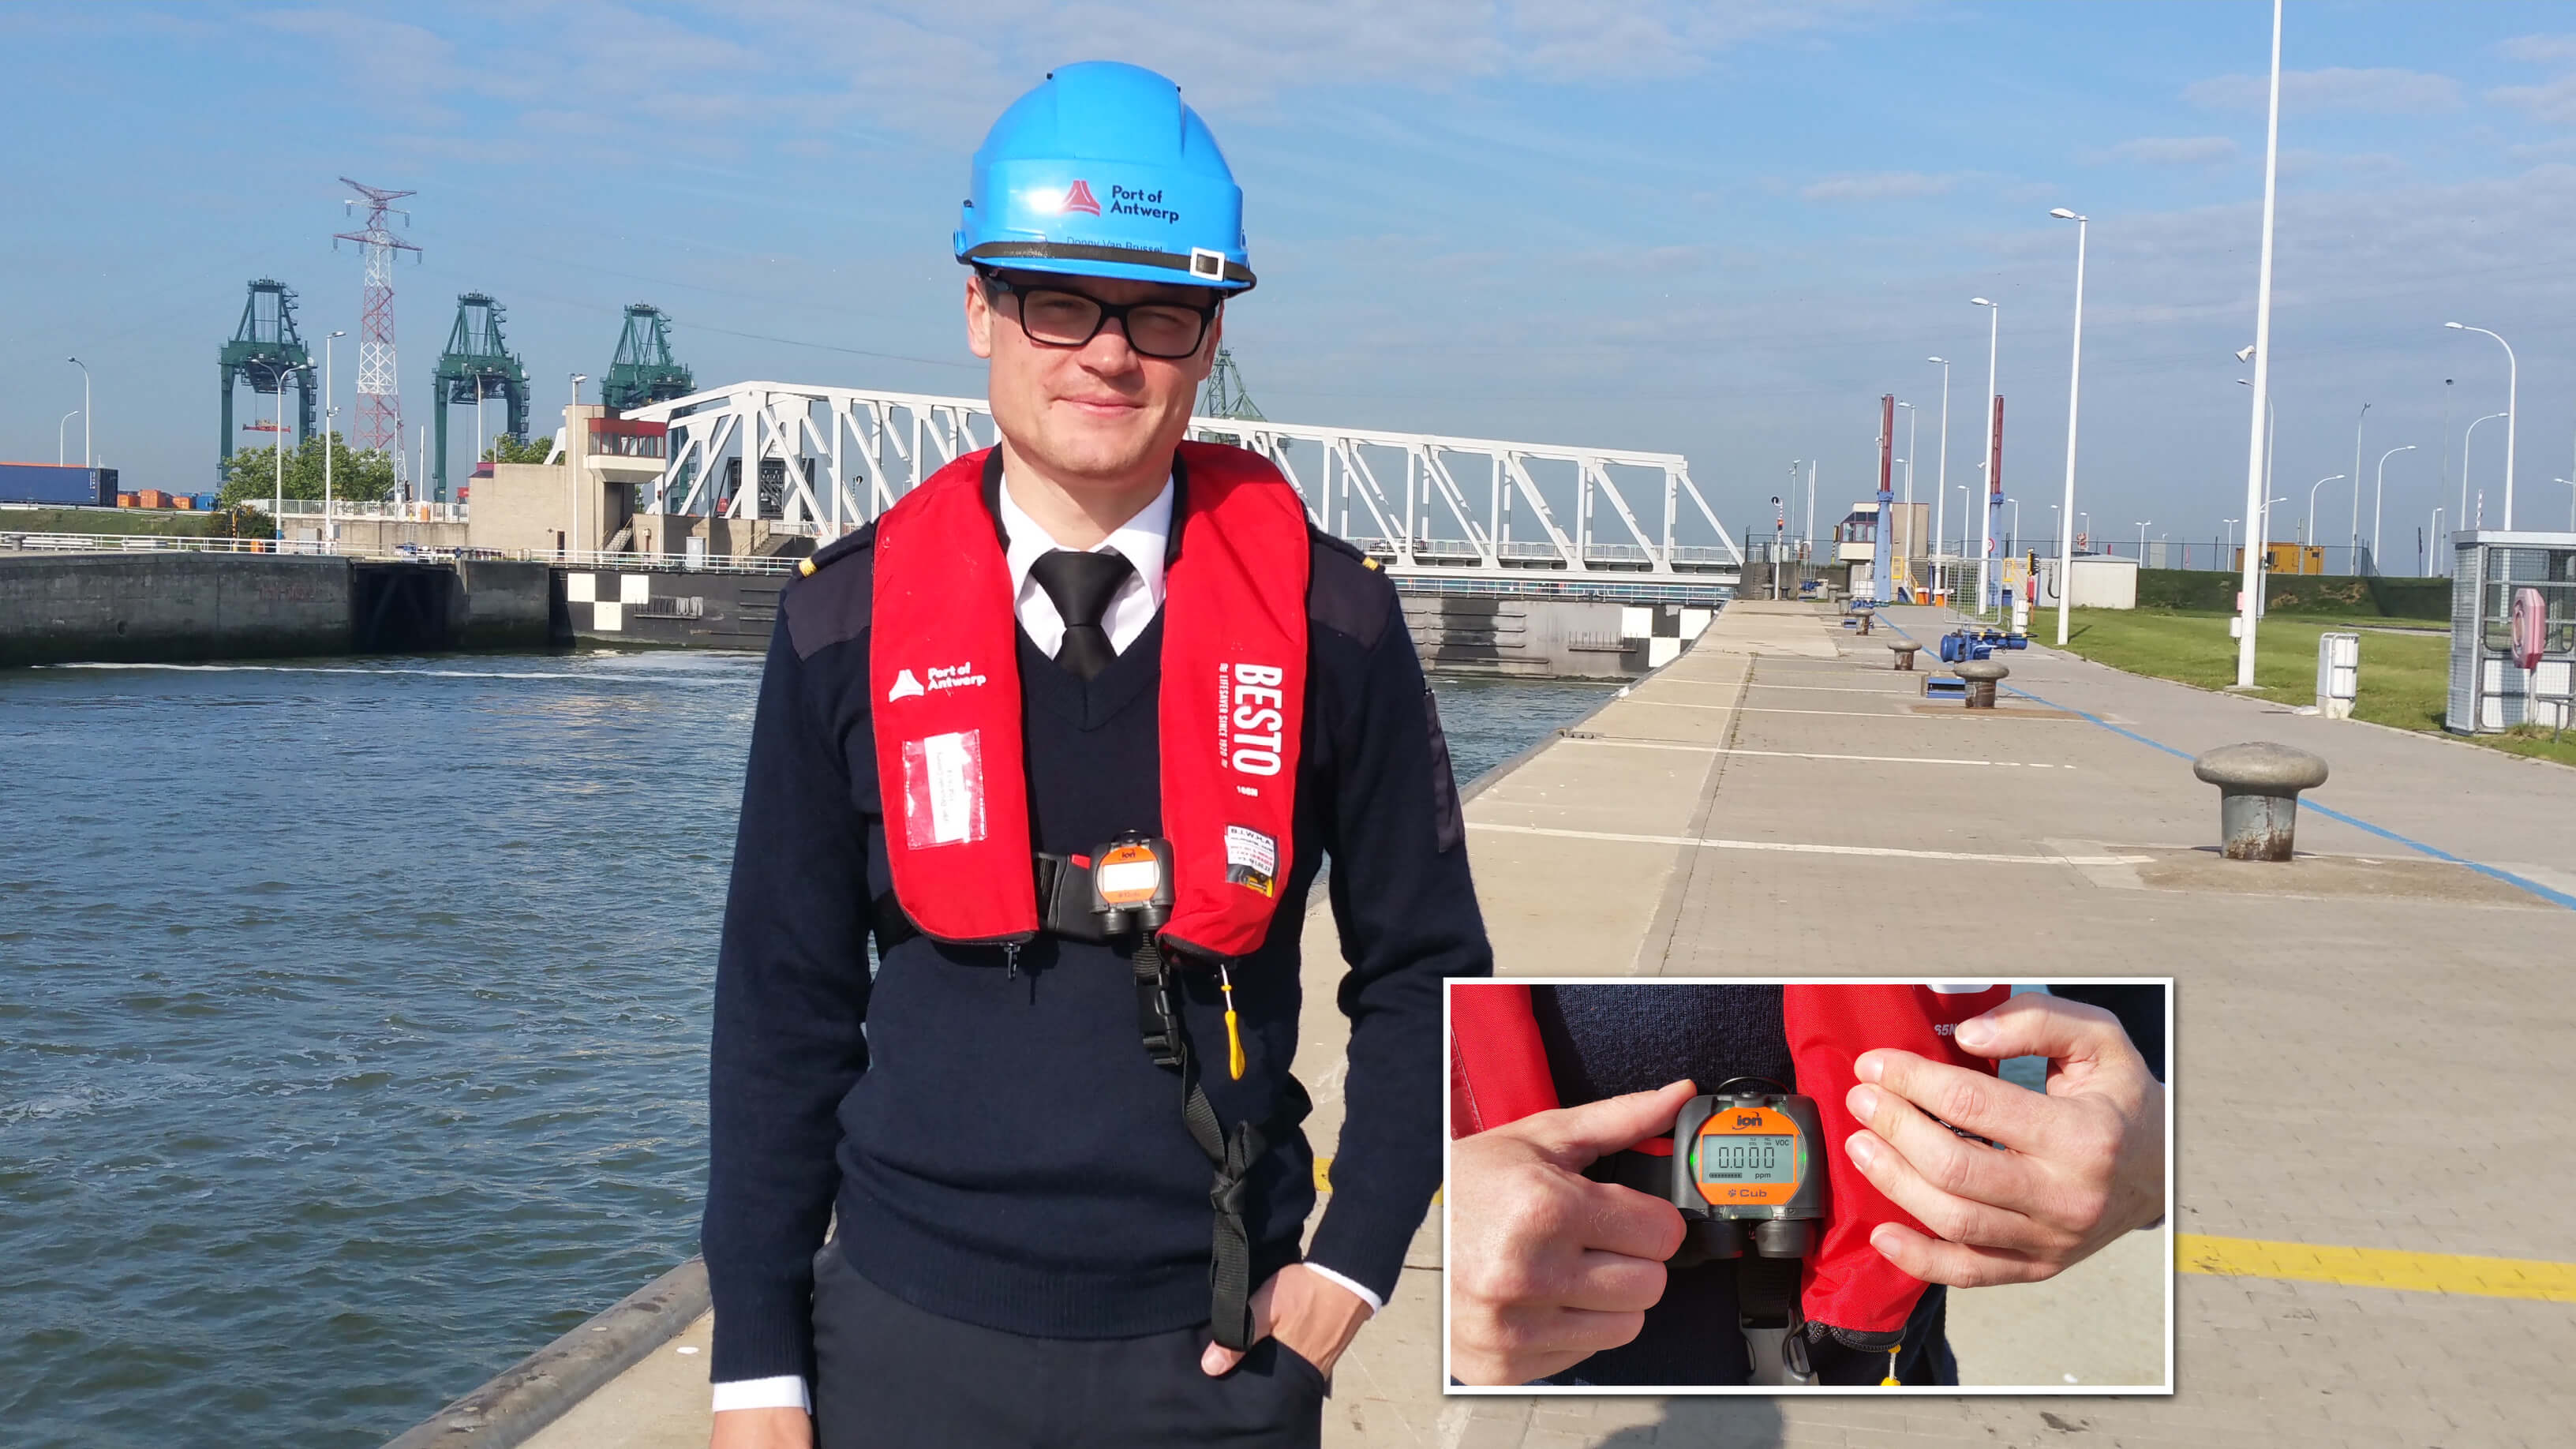 Protecting Port of Antwerp employees from hazardous gases